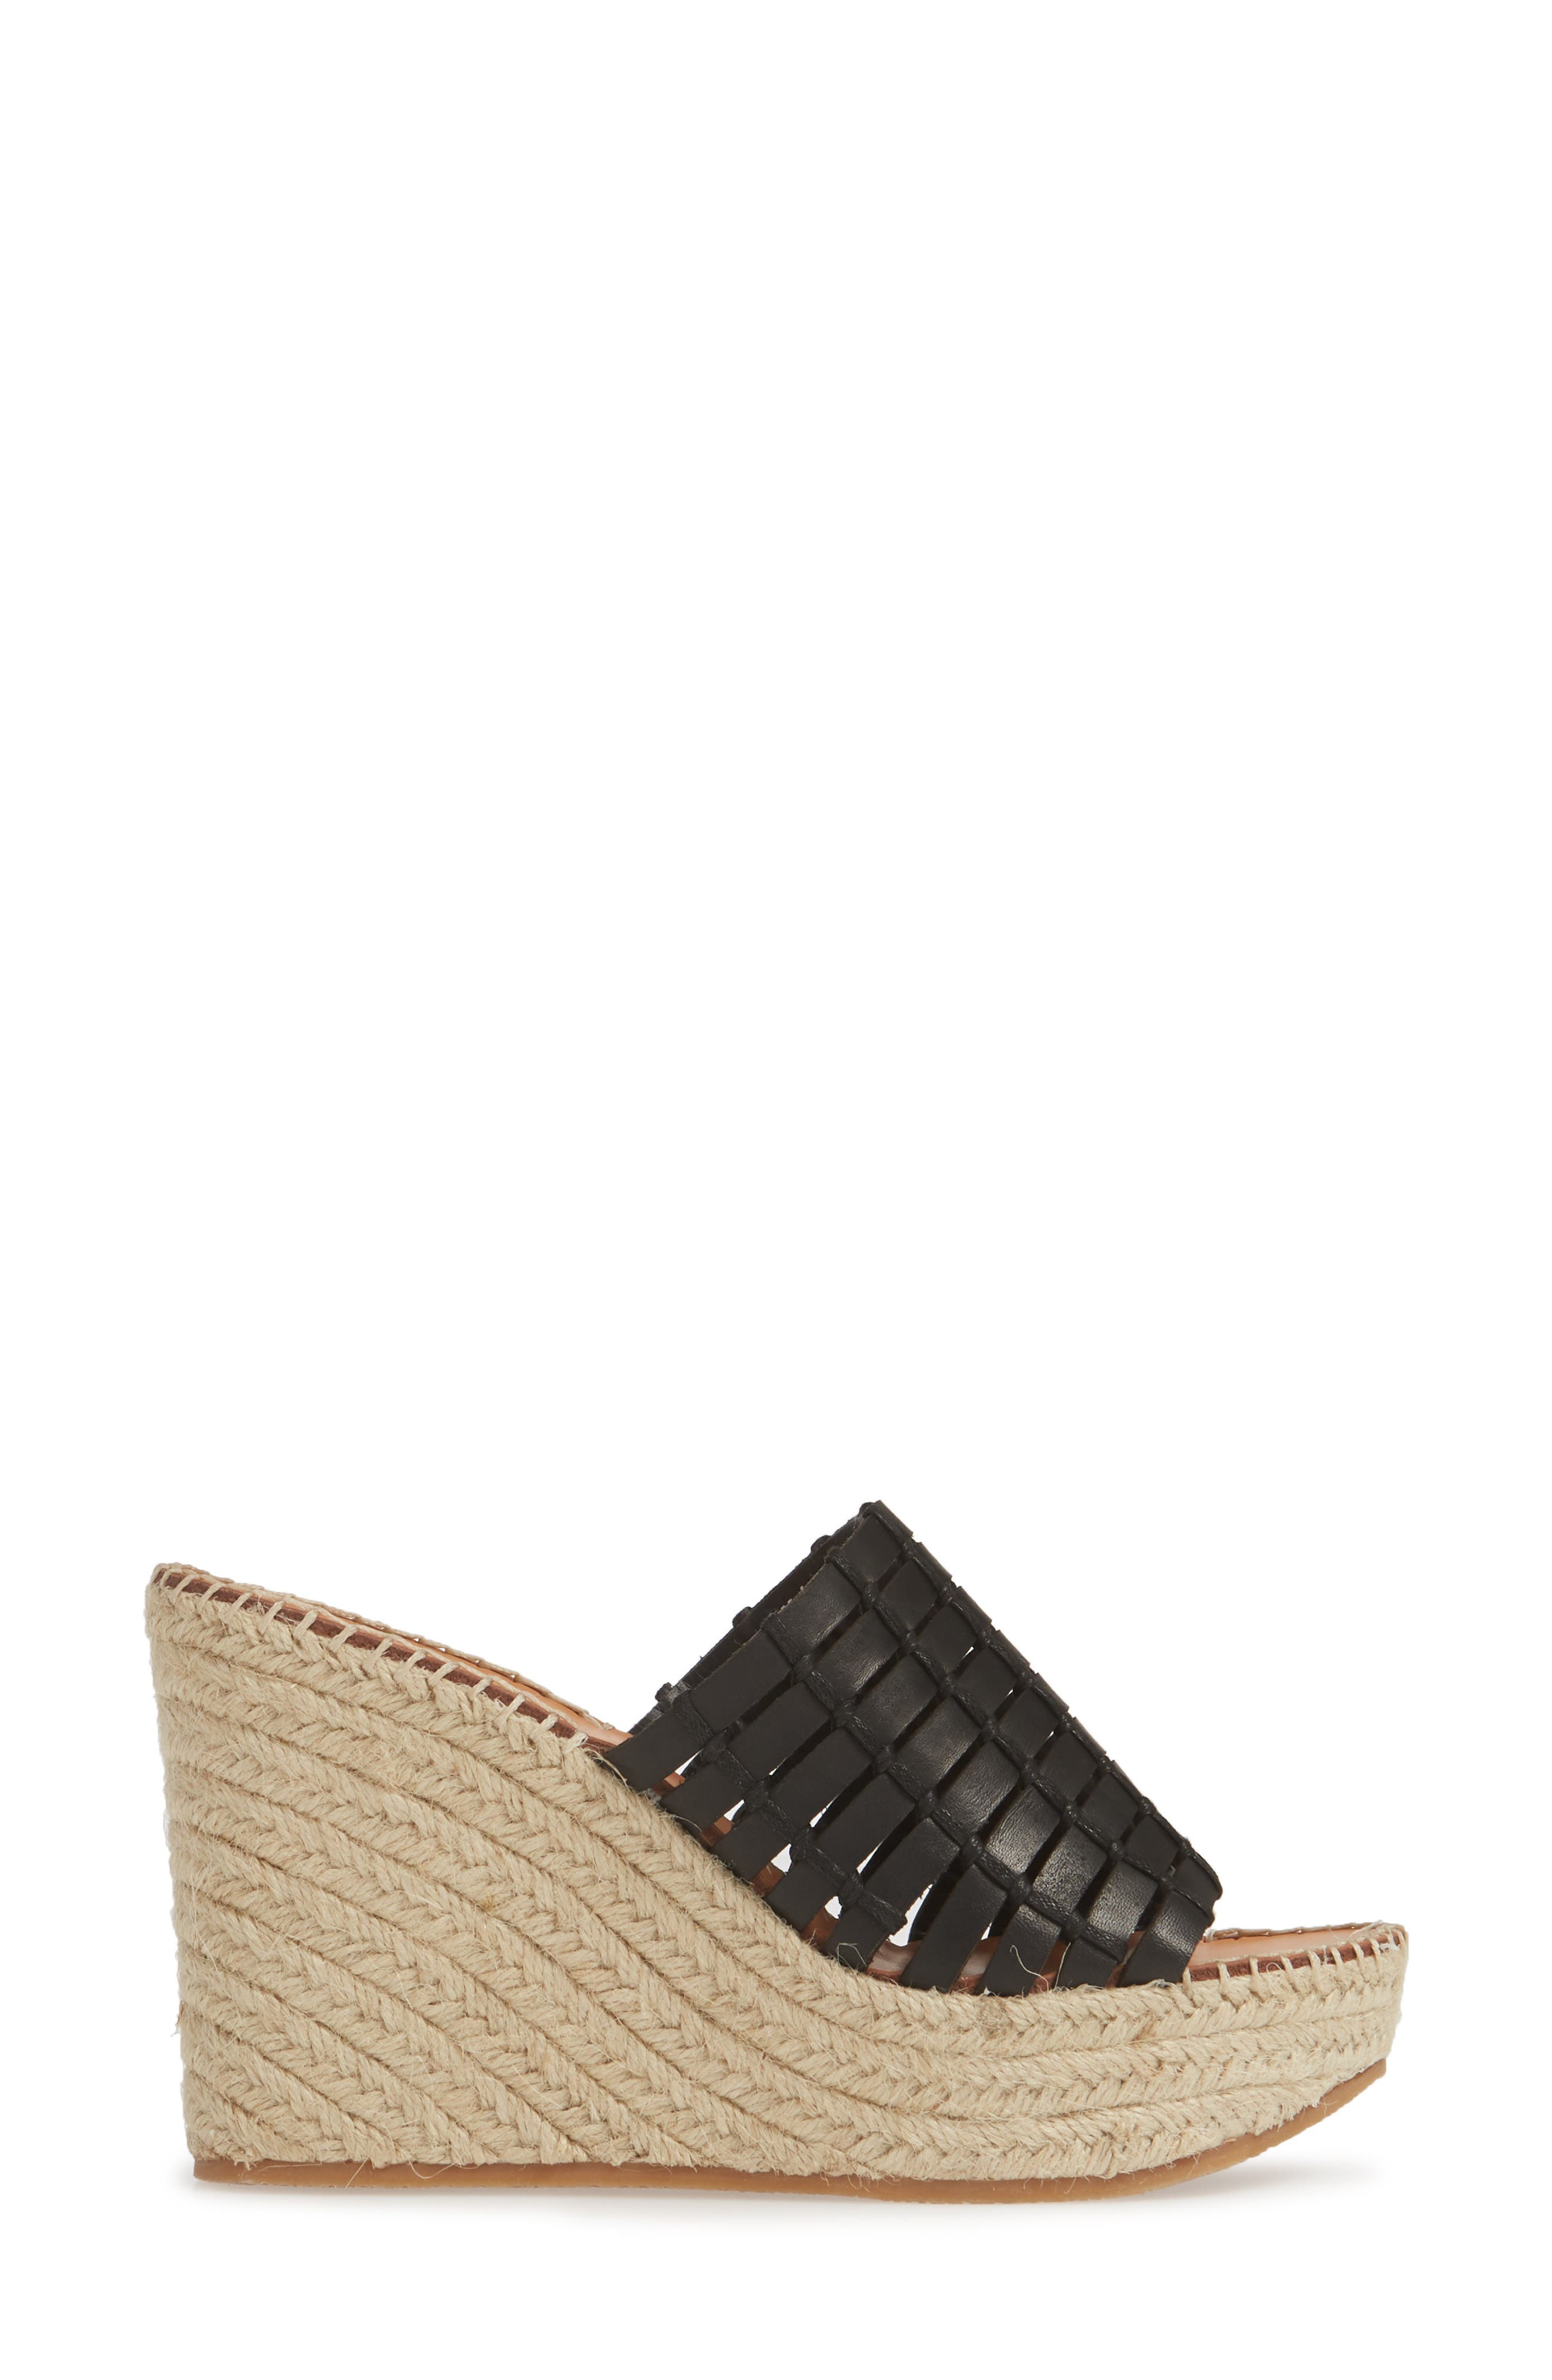 DOLCE VITA, Prue Espadrille Wedge Slide Sandal, Alternate thumbnail 3, color, BLACK LEATHER